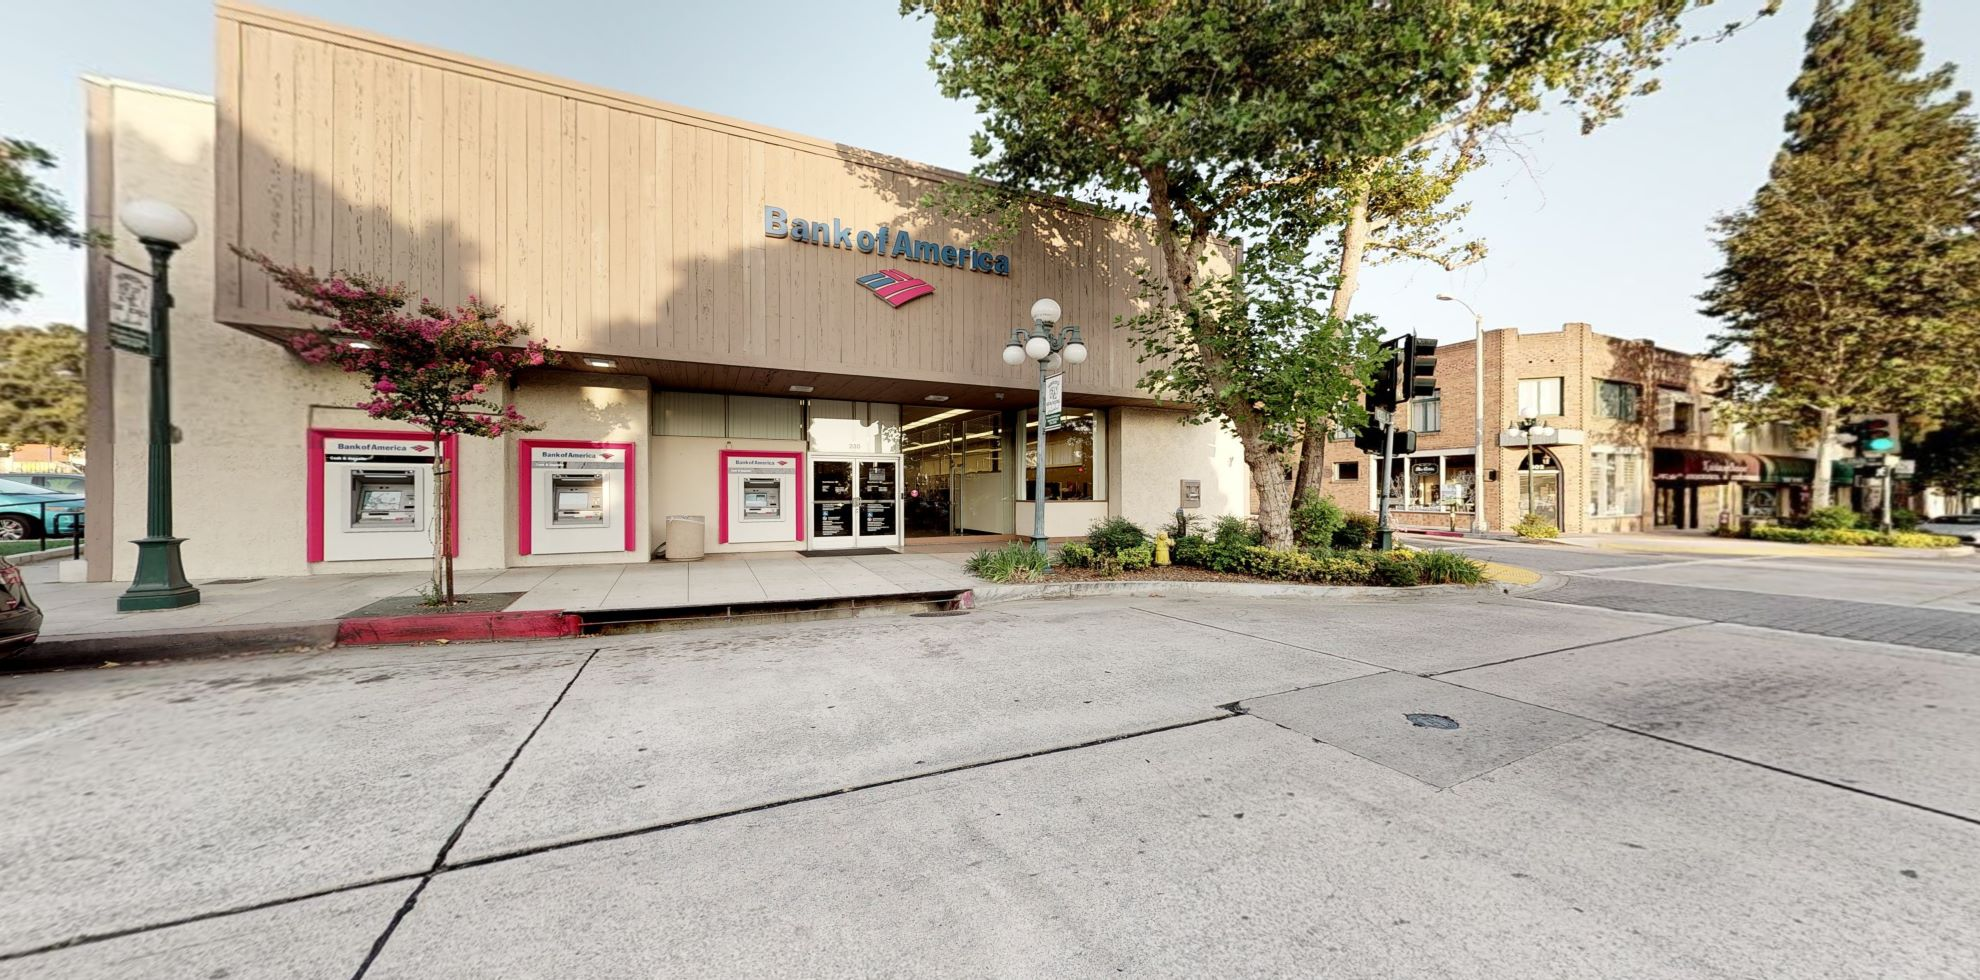 Bank of America financial center with walk-up ATM   230 S Myrtle Ave, Monrovia, CA 91016